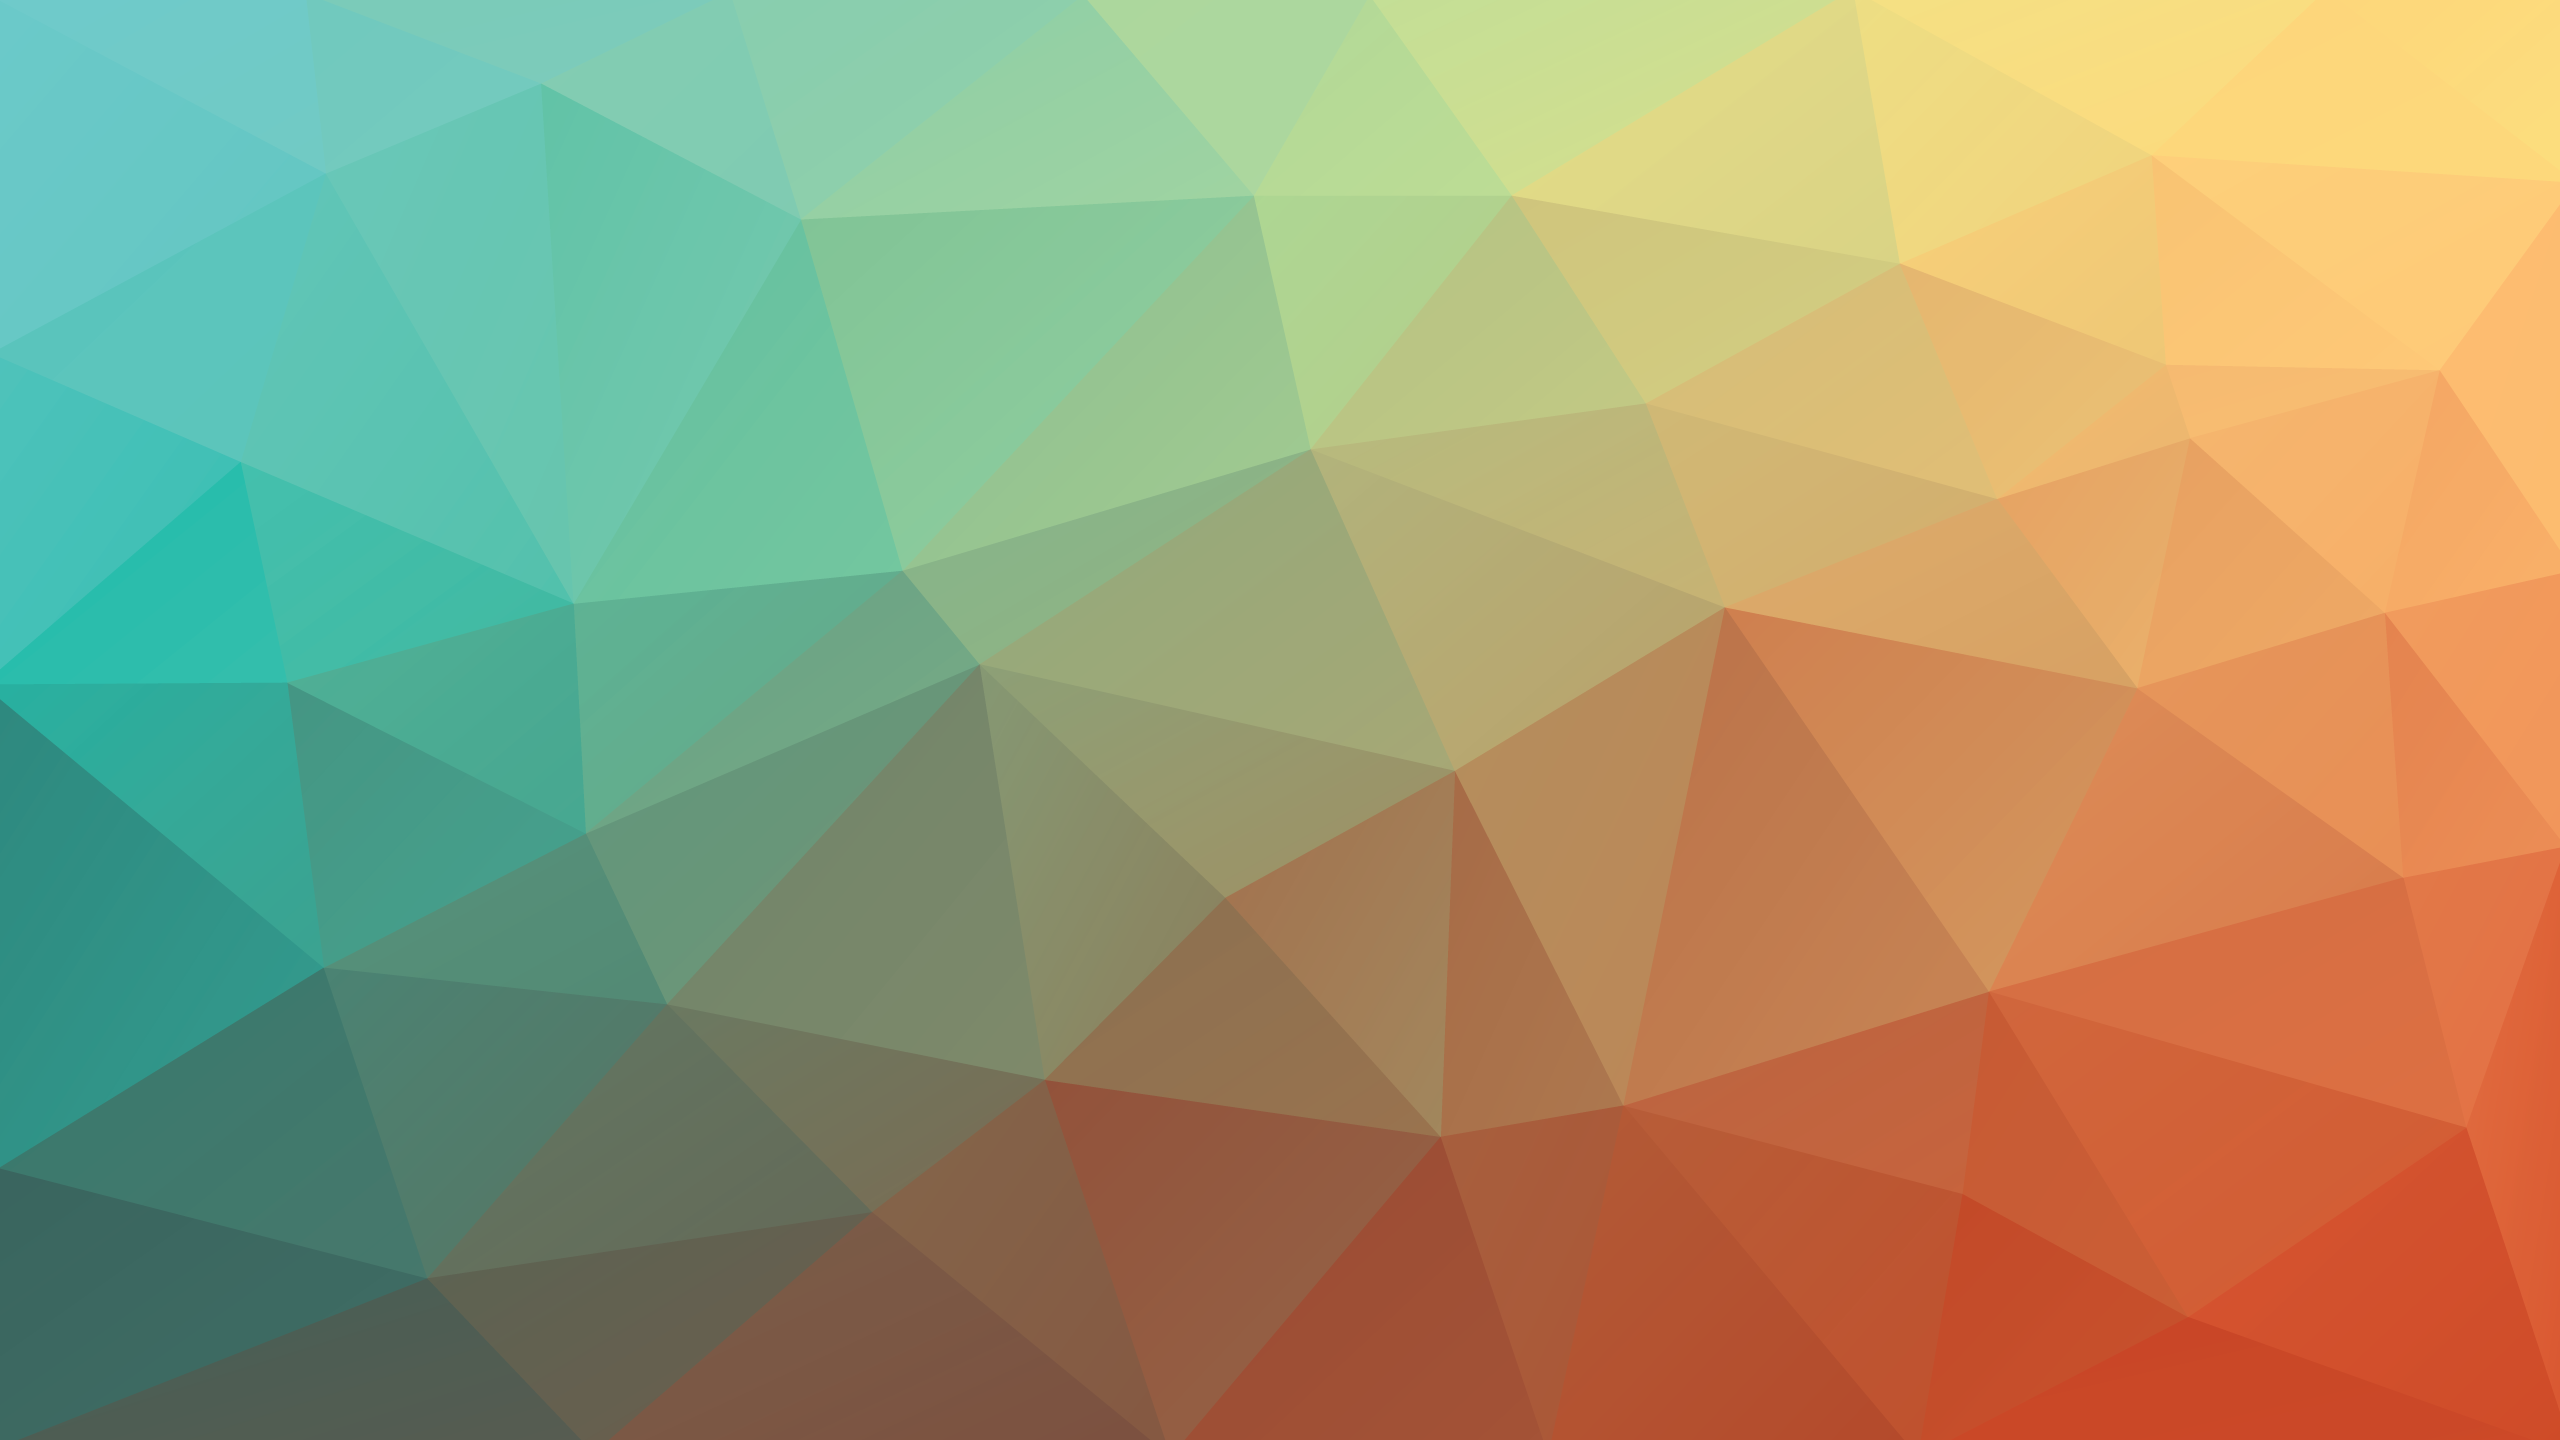 Tessellation Patterns Vector Backgrounds for Designers 2560x1440